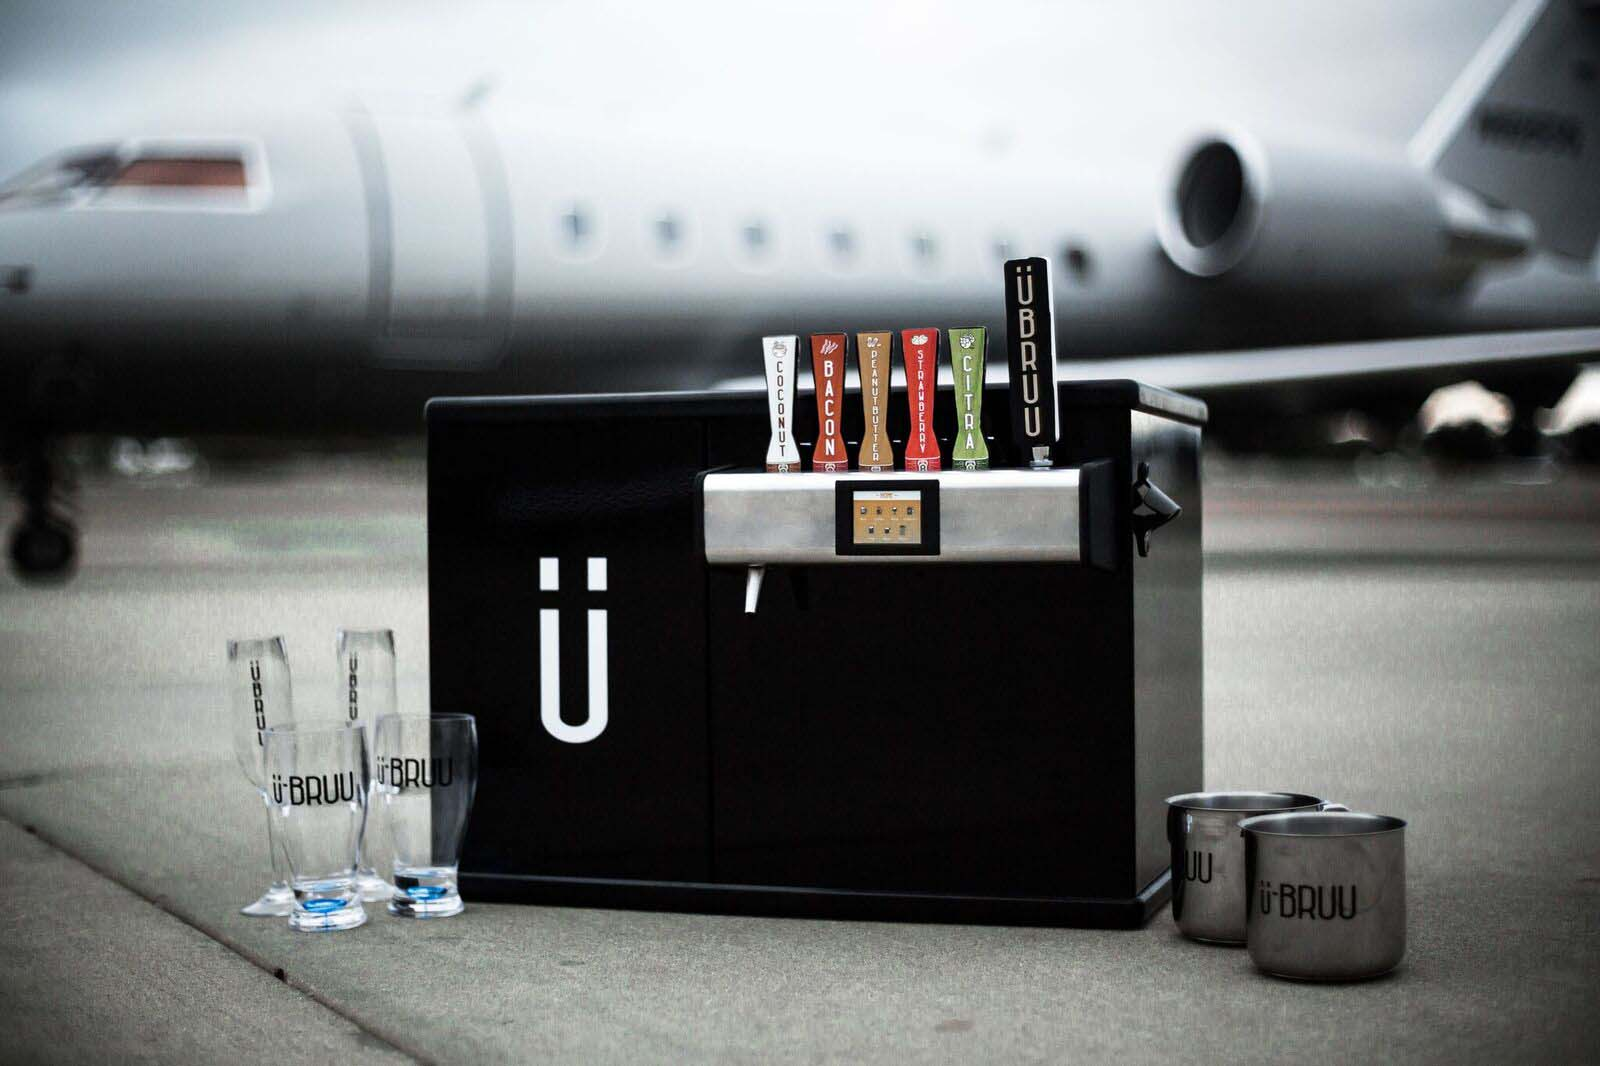 UBruu Beverage Dispenser Kickstarter!